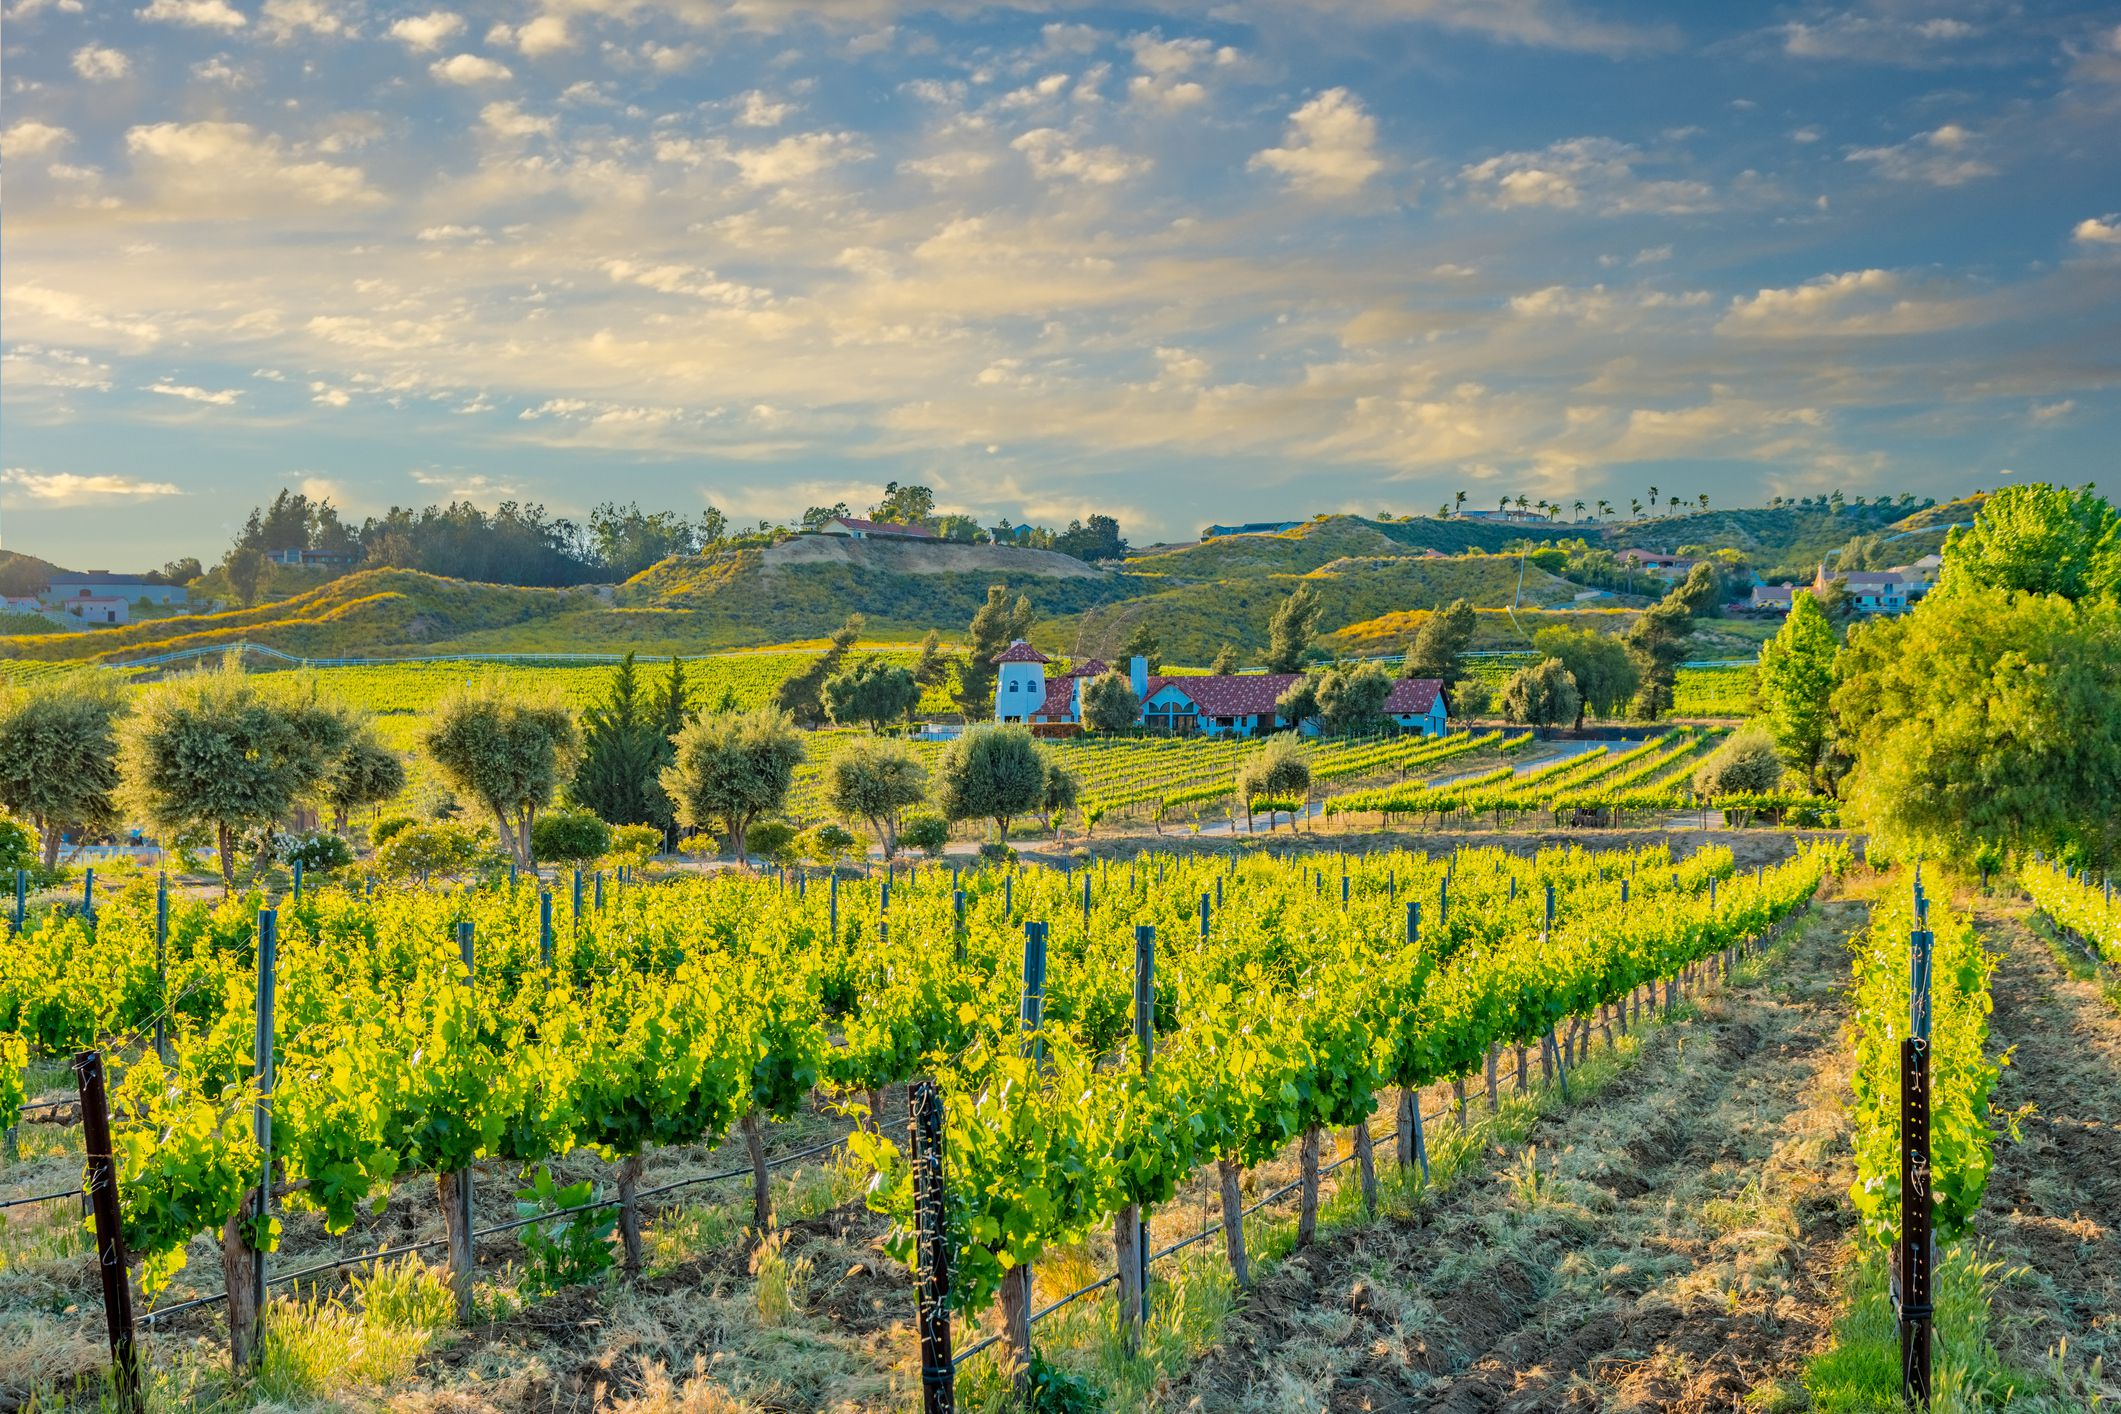 The Top 10 Things to Do in California's Temecula Valley